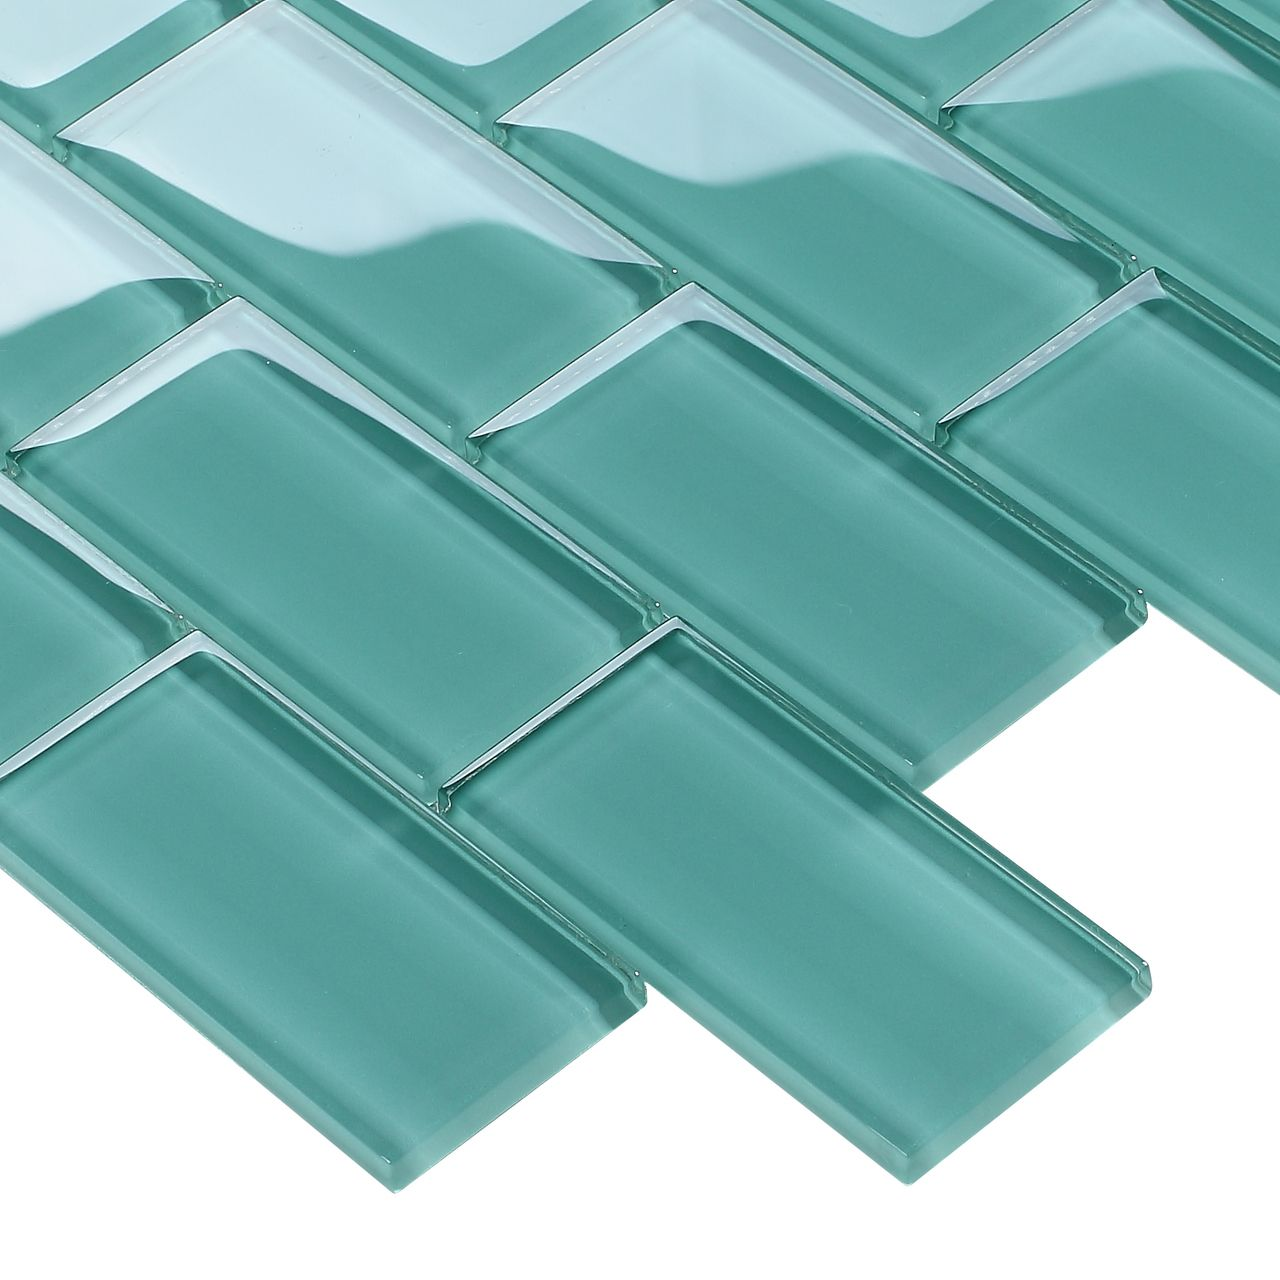 Turquoise Kitchen Wall Tiles: Subway Glass Tile Turquoise 2x4